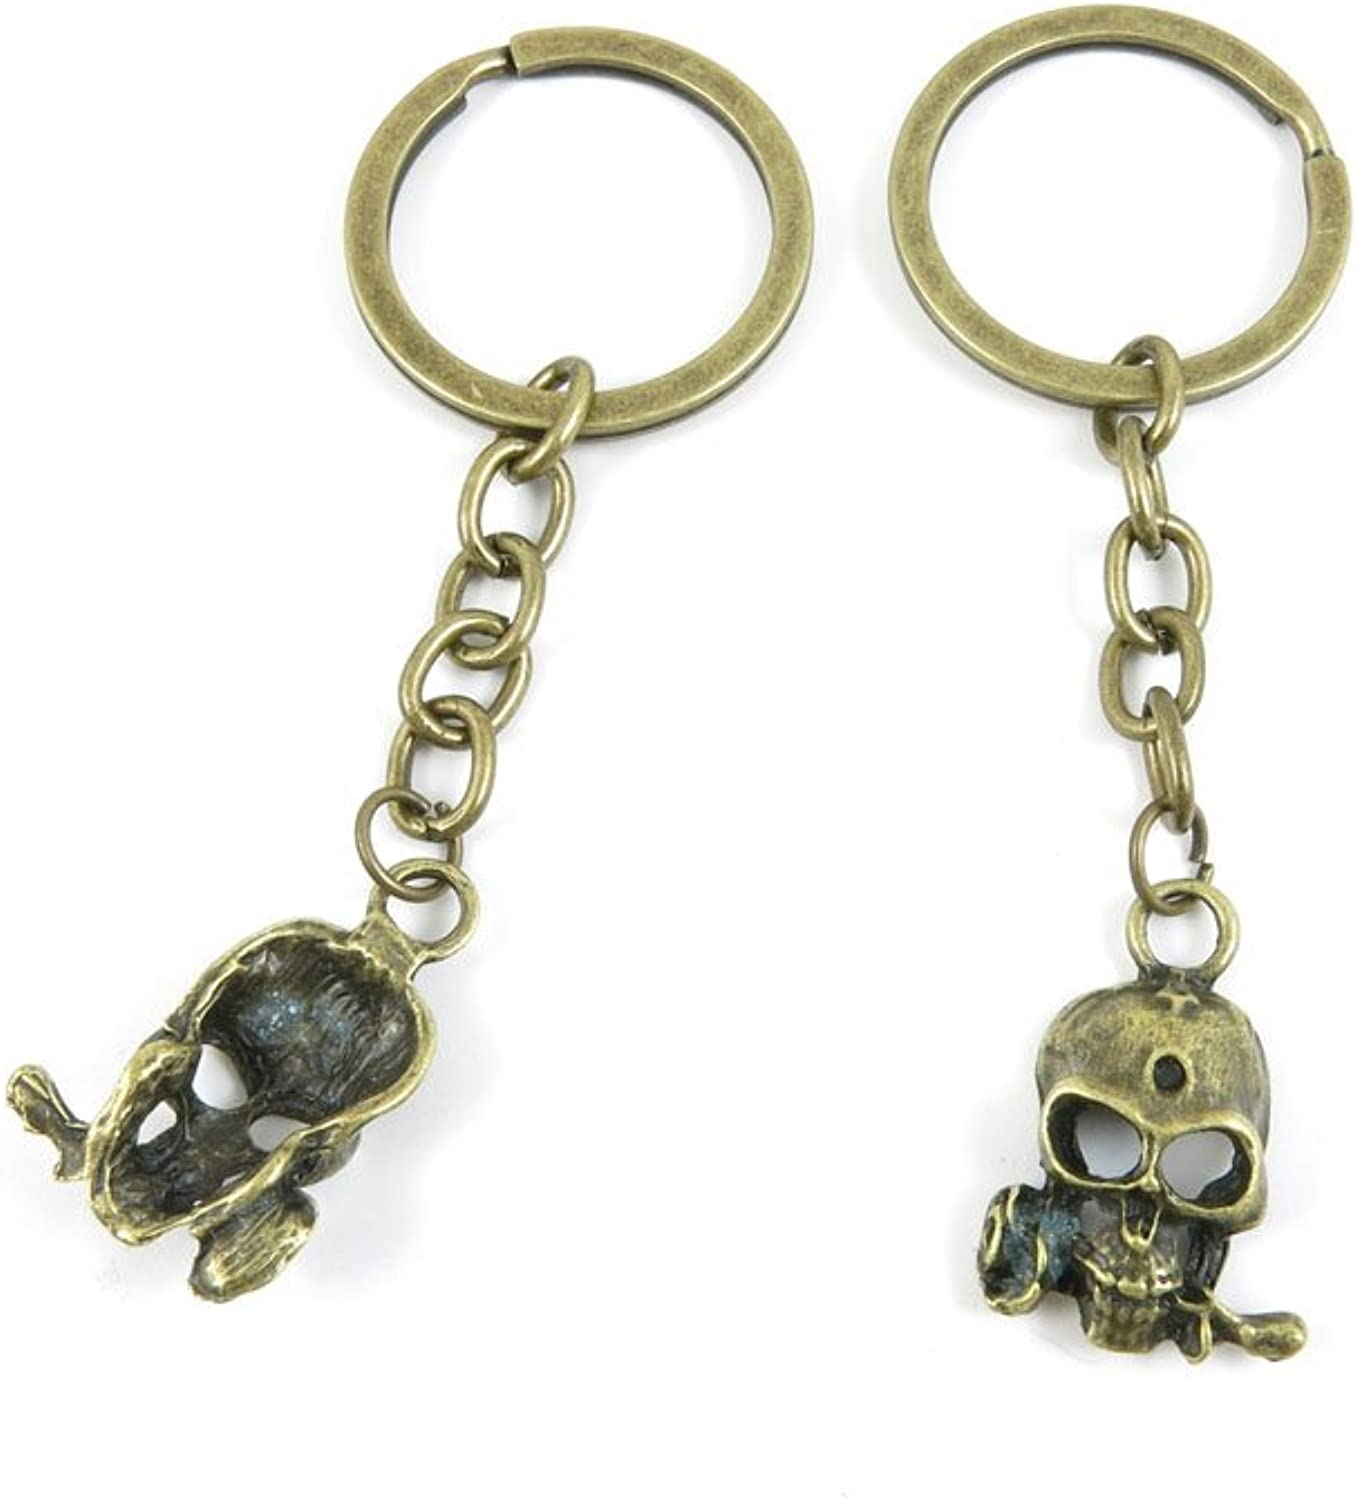 100 PCS Keyrings Keychains Key Ring Chains Tags Jewelry Findings Clasps Buckles Supplies C6AS4 Skull pink